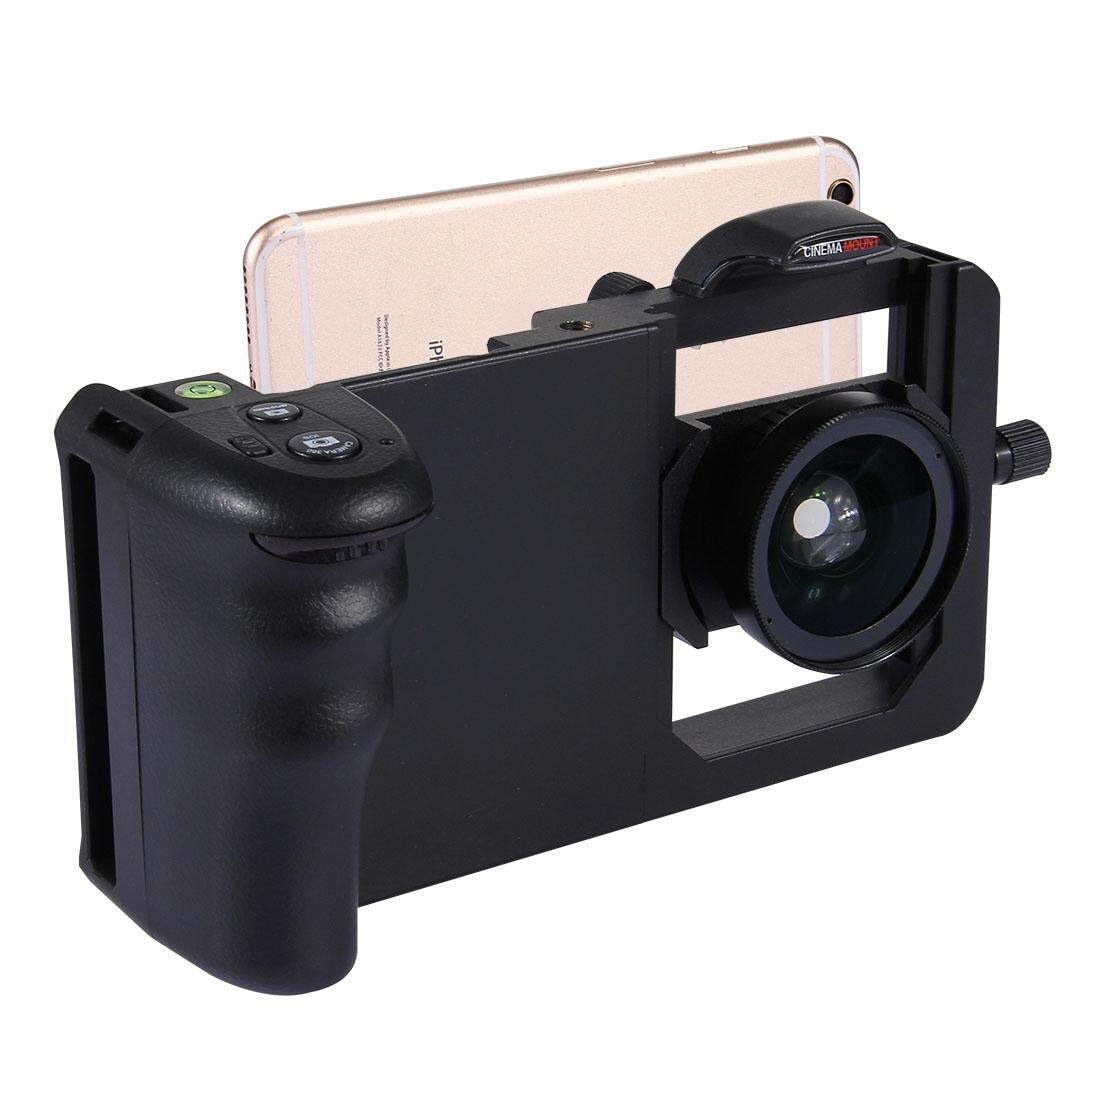 Cinema Mount Professional Smartphone Stabilizer Rig Mount with Grip & 0.45X Super Wide Angle Macro Lens, For iPhone, Galaxy, Sony, Lenovo, HTC, Huawei, Google, LG, Xiaomi and other Smartphones(Black) - intl